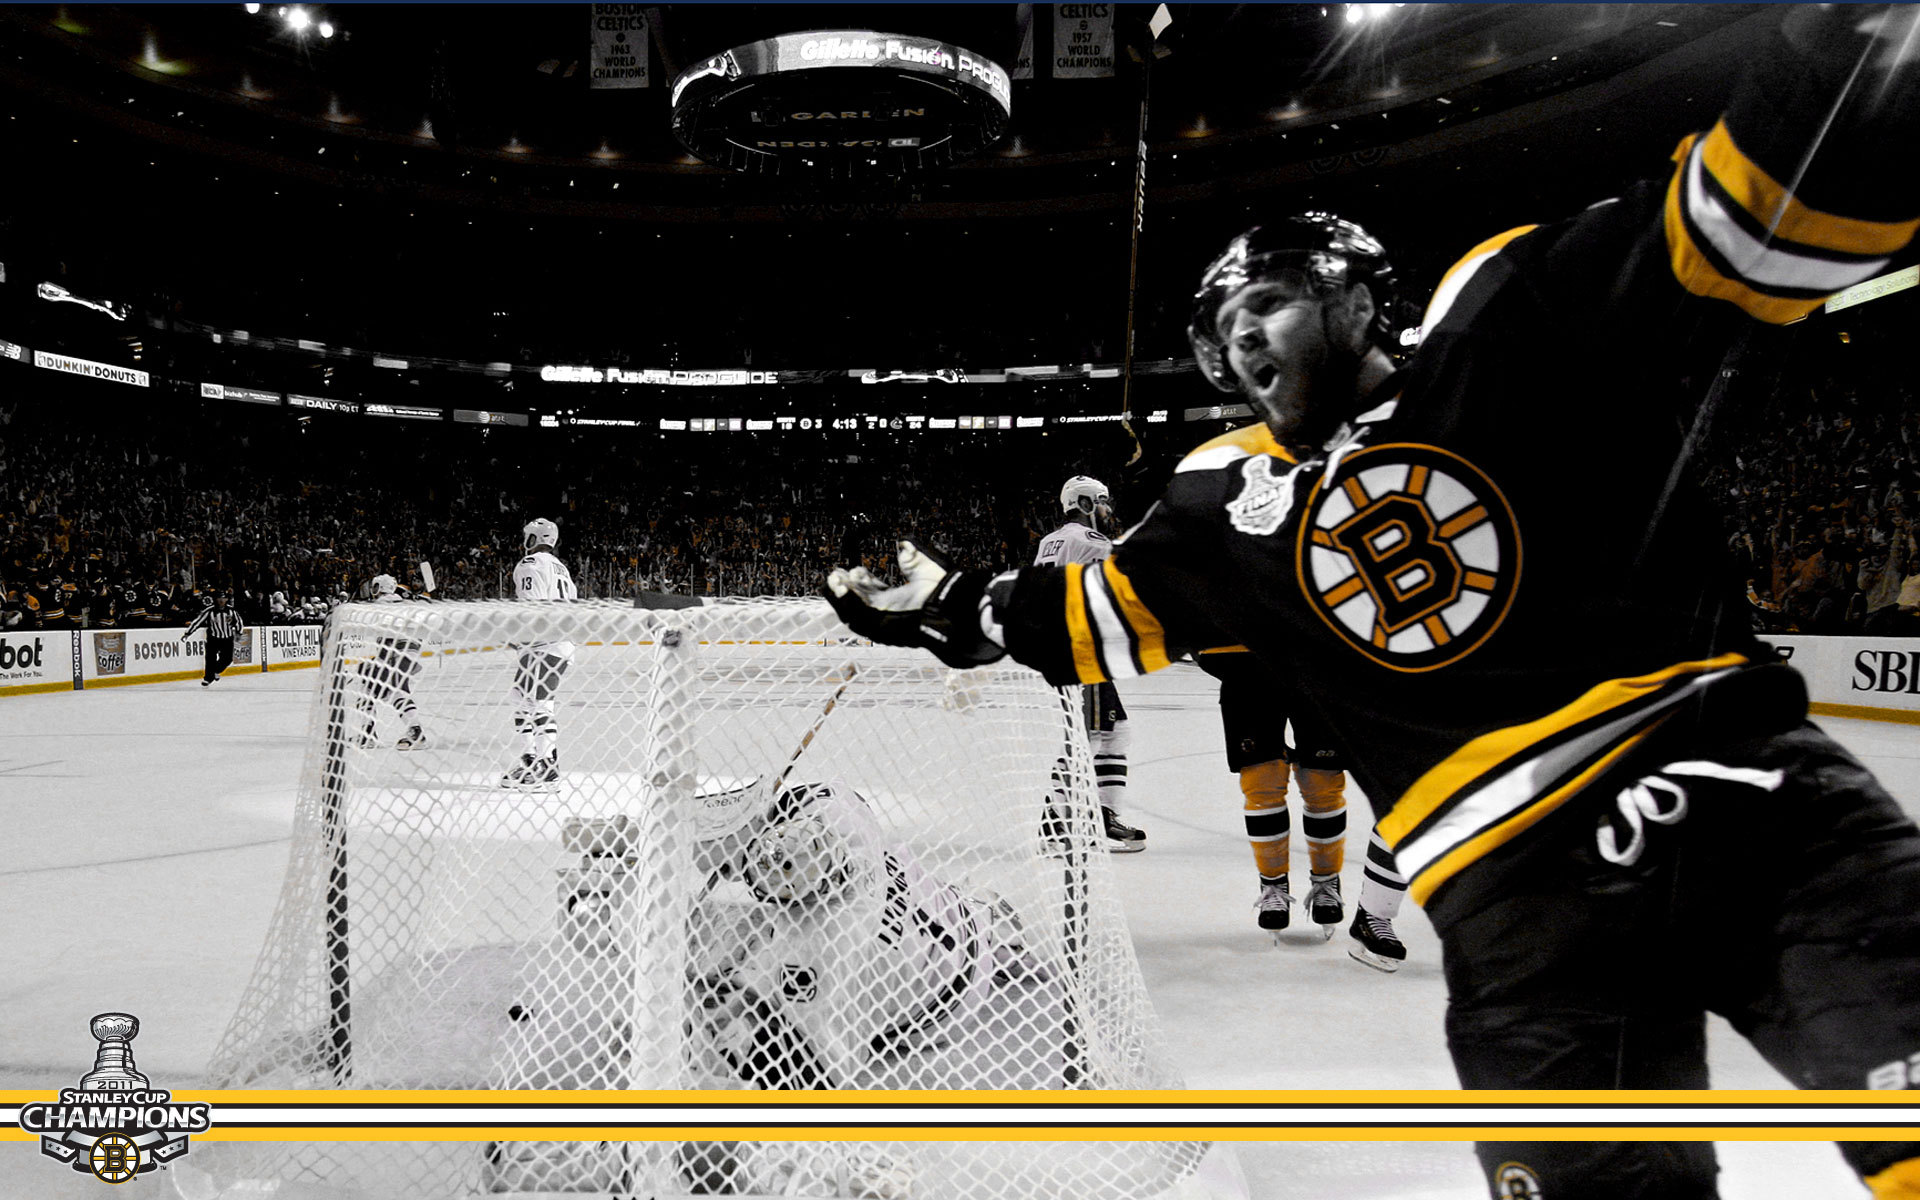 Boston Bruins Images Stanley Cup Champions David Krejci HD Wallpaper And Background Photos